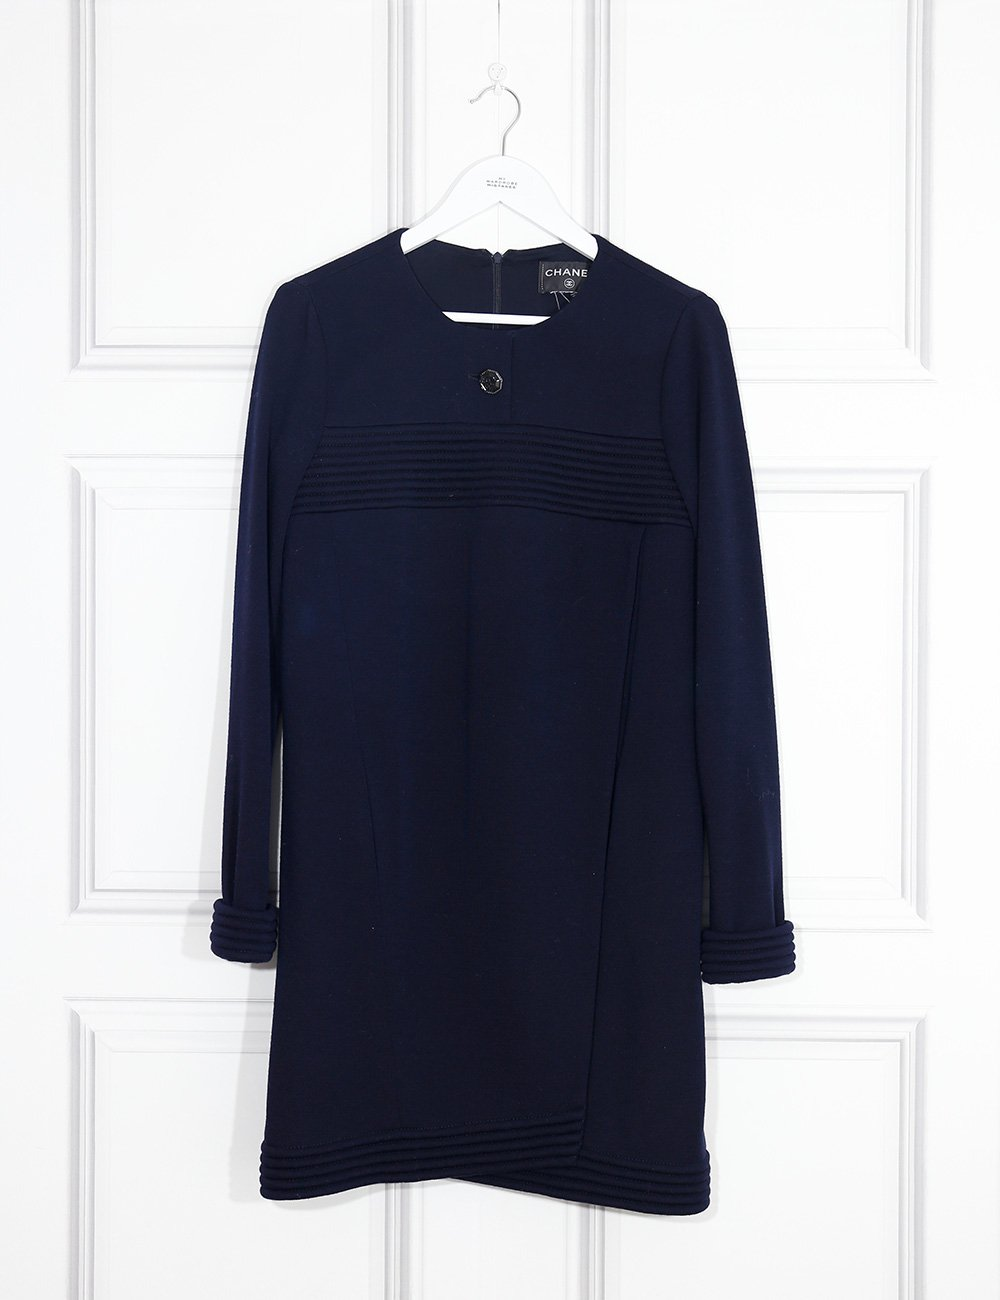 Chanel blue woollen dress with one button 8UK- My Wardrobe Mistakes